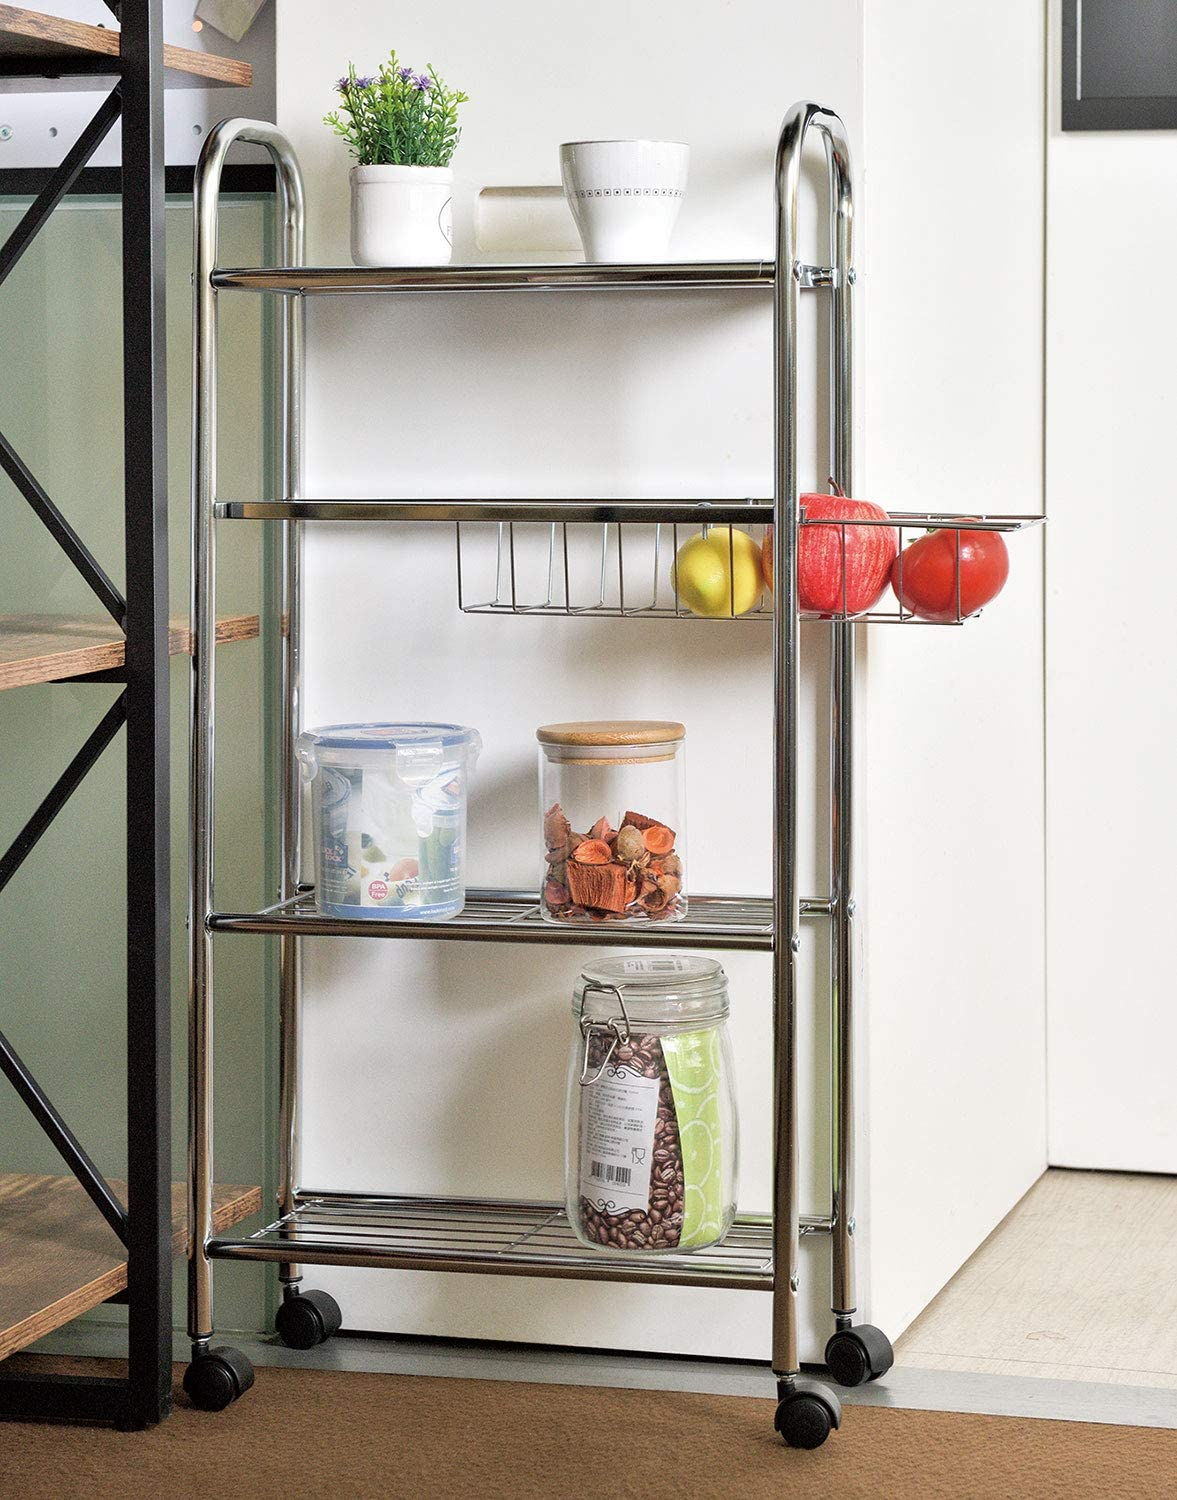 4 Tier Slim Storage Cart Narrow Shelf Slide Out Storage Tower Rack Mobile Shelving Organizer Rolling Utility Cart Perfect For Home Office Kitchen Laundry Room Office Products